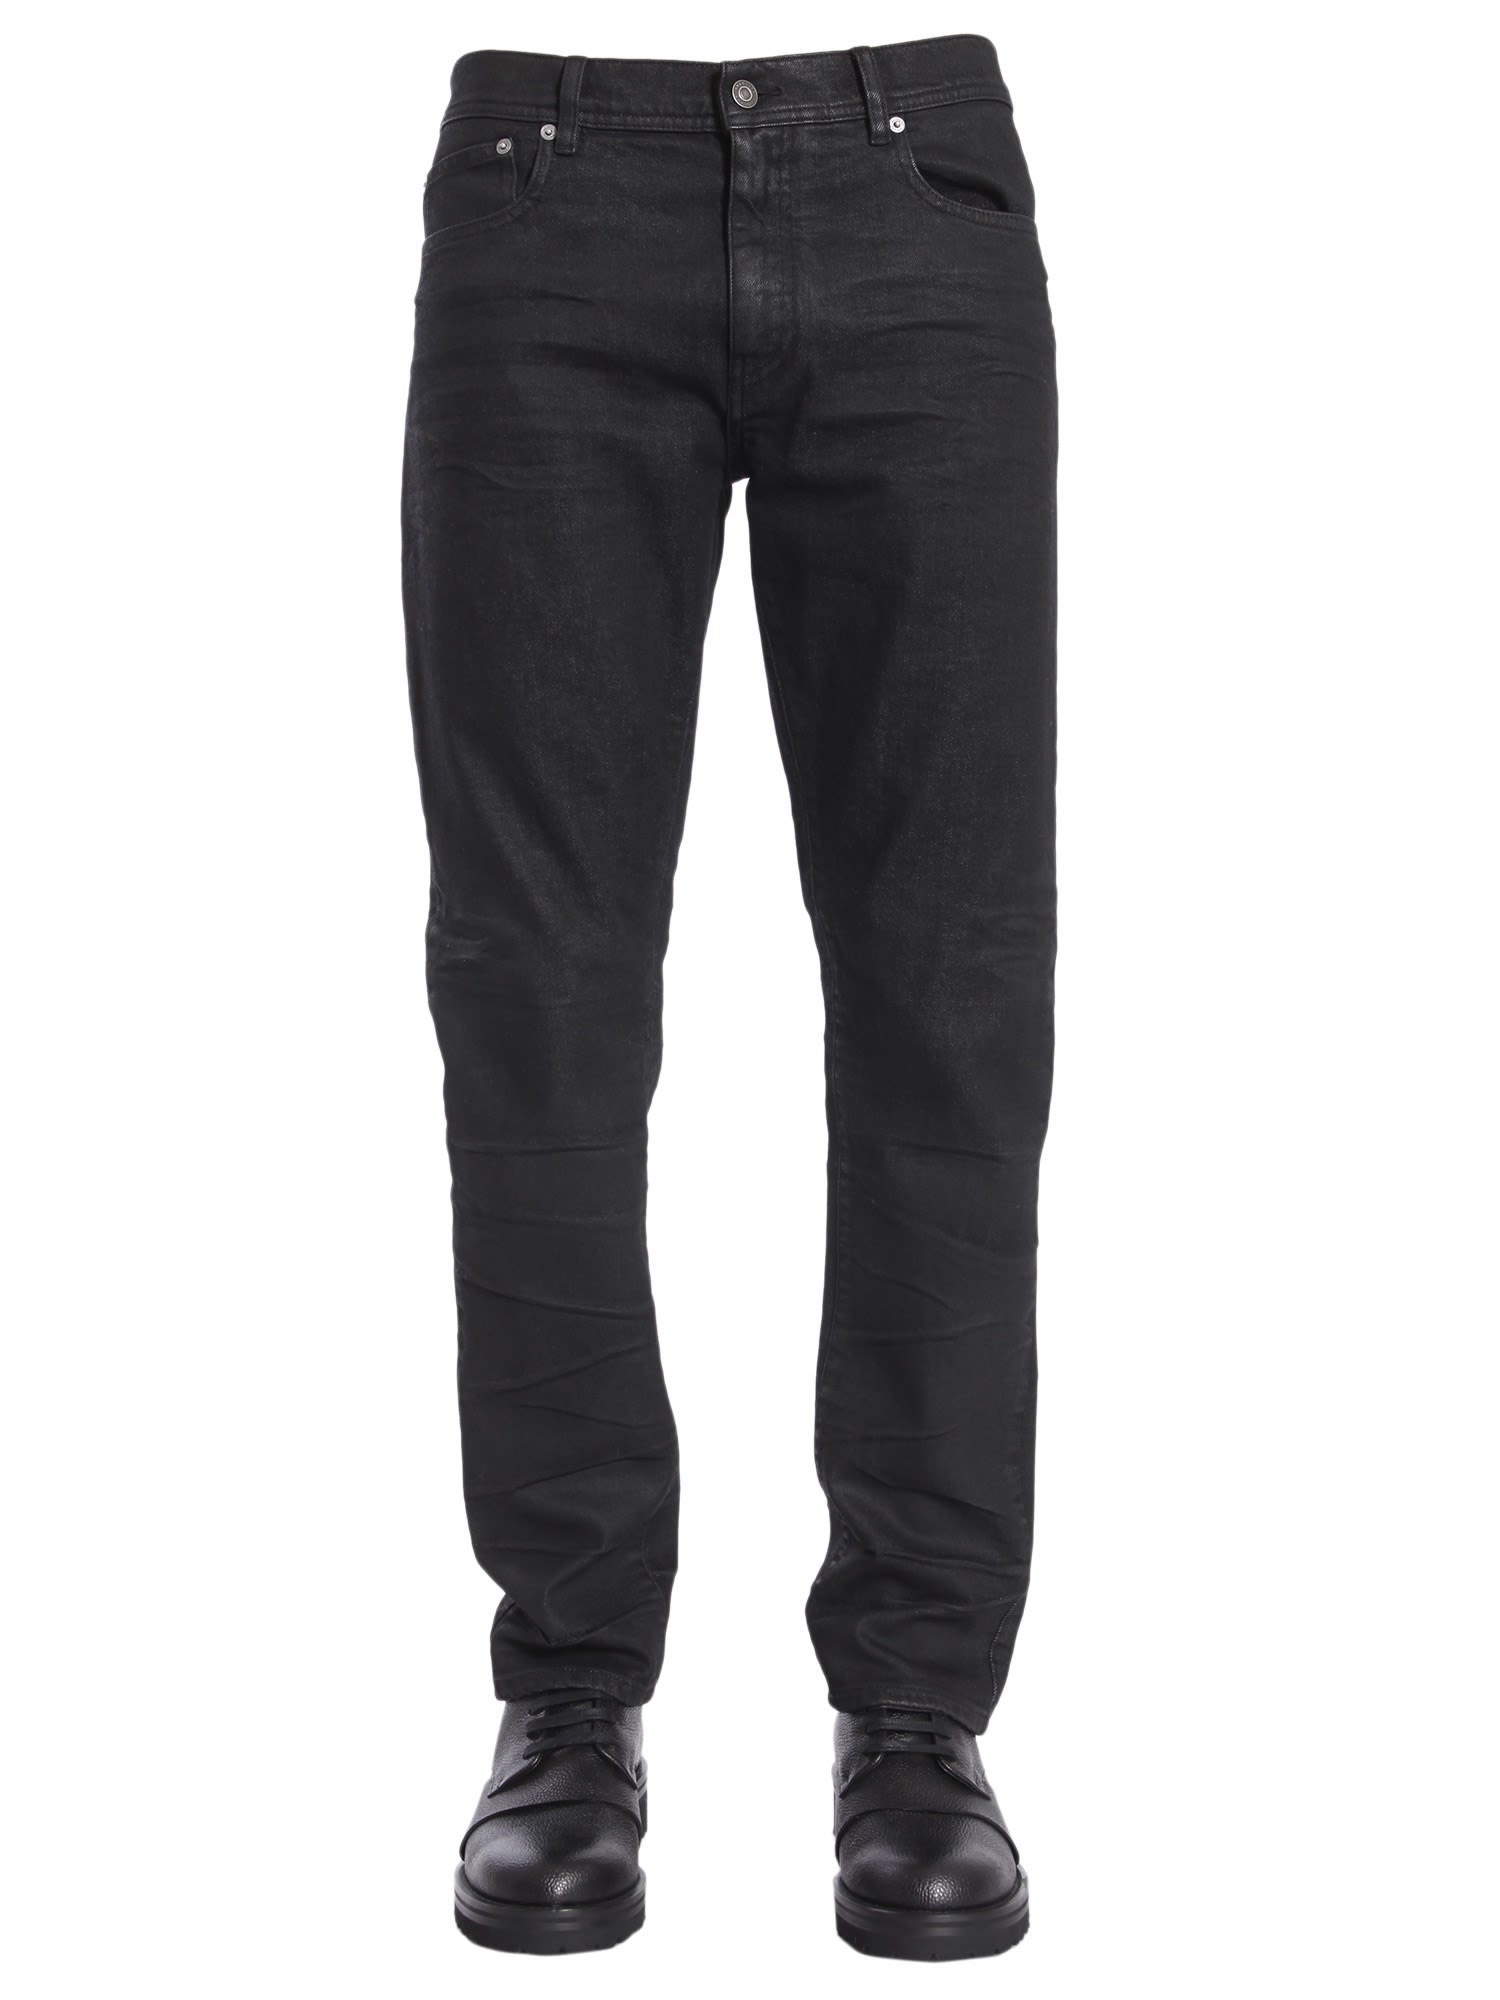 Jeans Tapered Fit